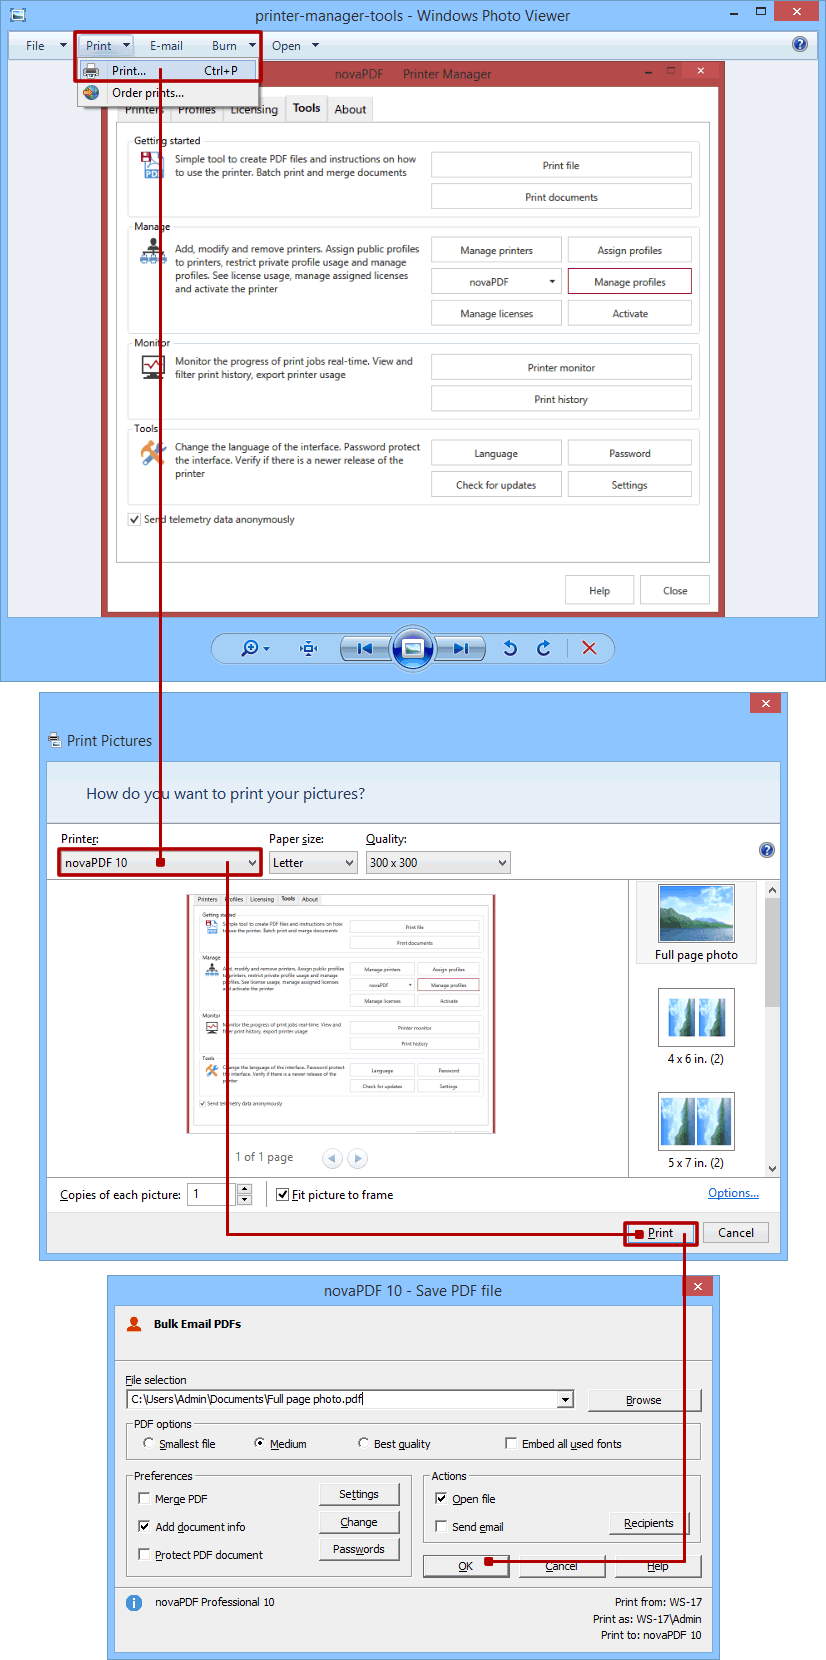 Convert JPG to PDF (or other image formats to PDF).